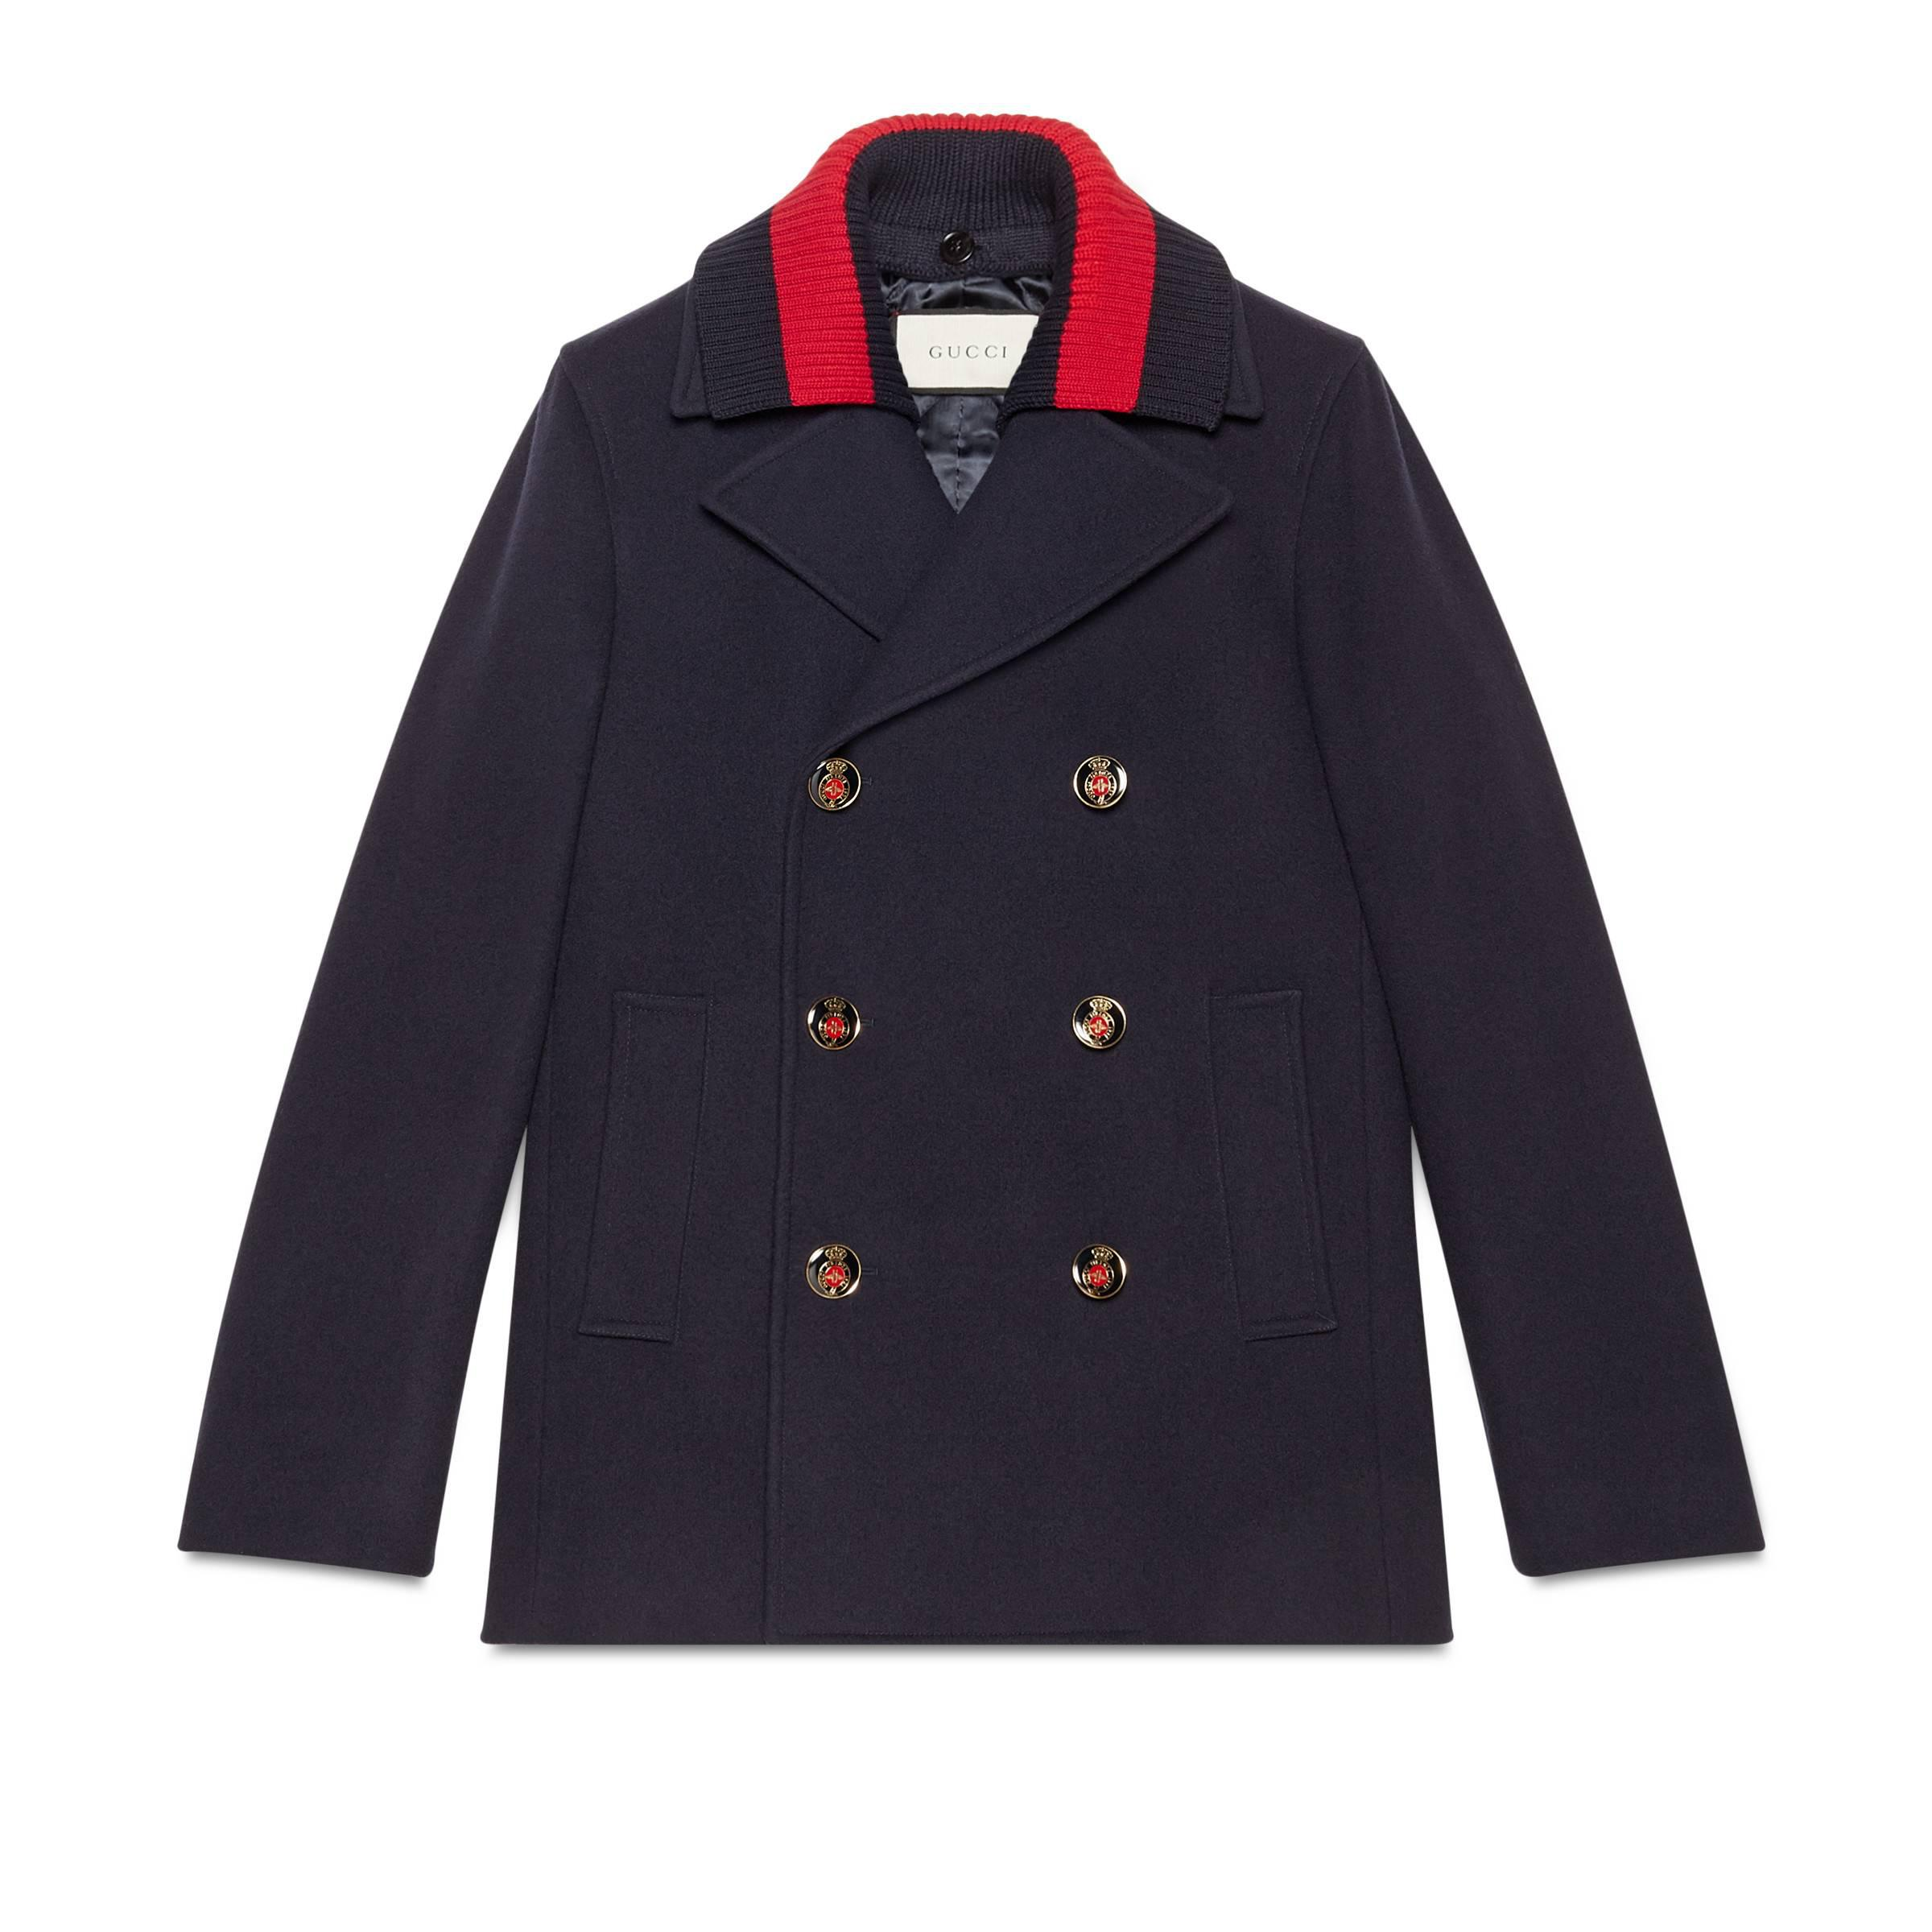 4094ea25ccf2 Gucci Wool Pea Coat With Web in Black for Men - Lyst